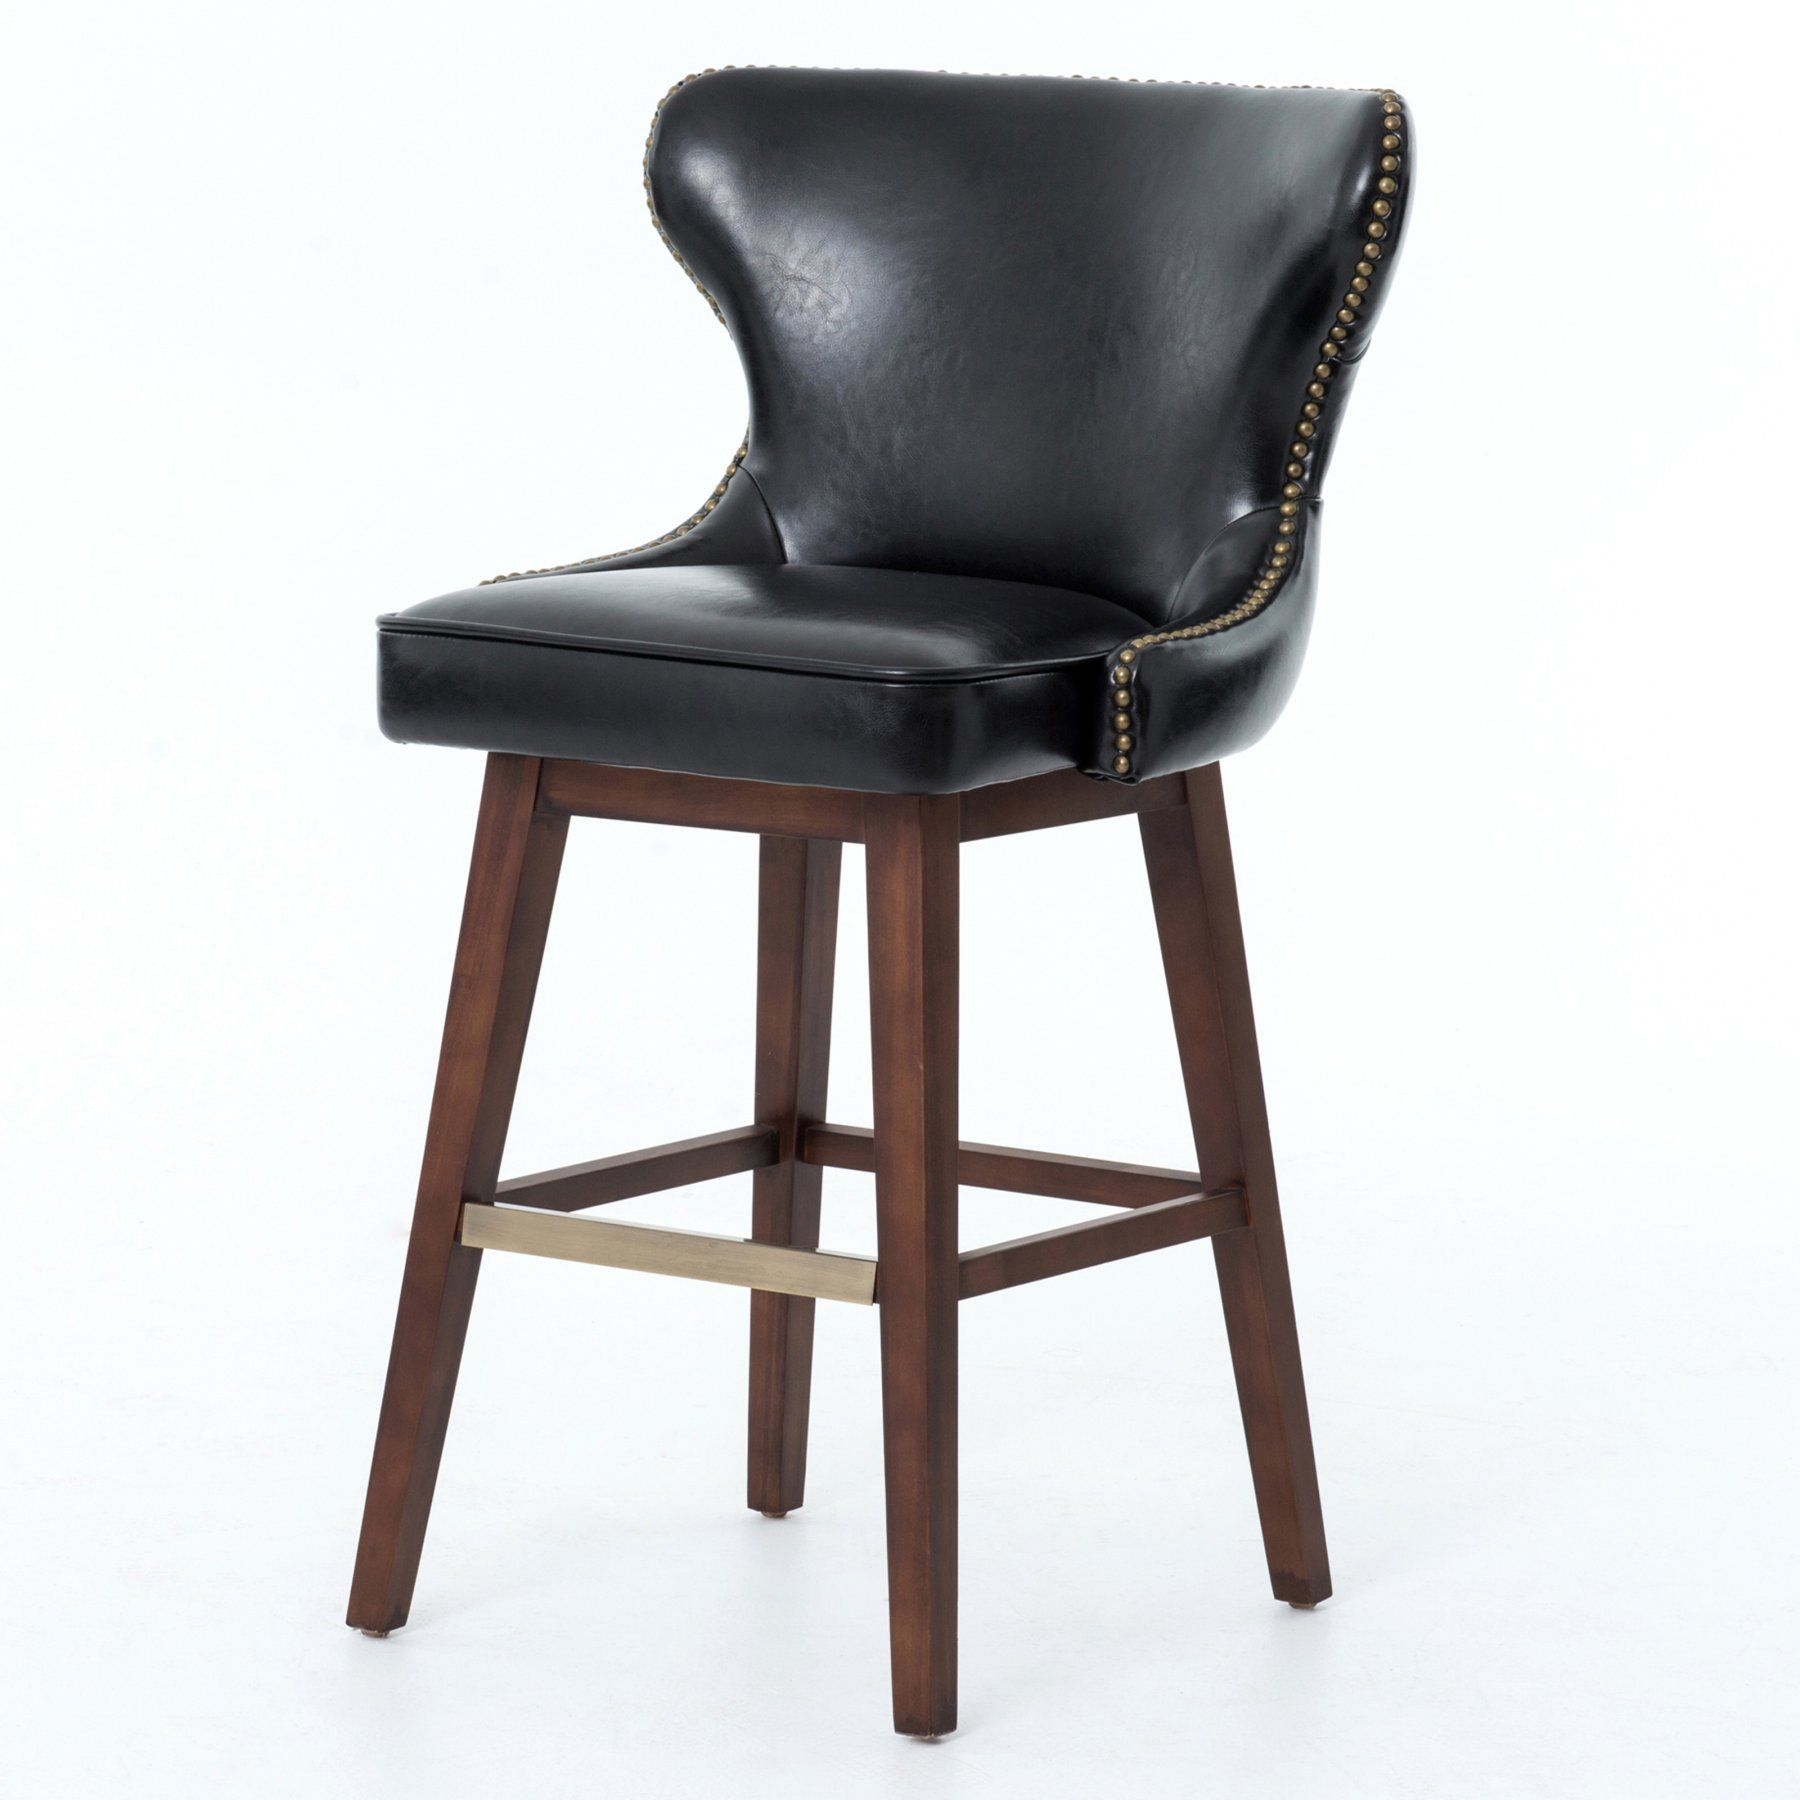 Surprising Four Hands Julie 26 In Swivel Counter Stool Black Clin Squirreltailoven Fun Painted Chair Ideas Images Squirreltailovenorg